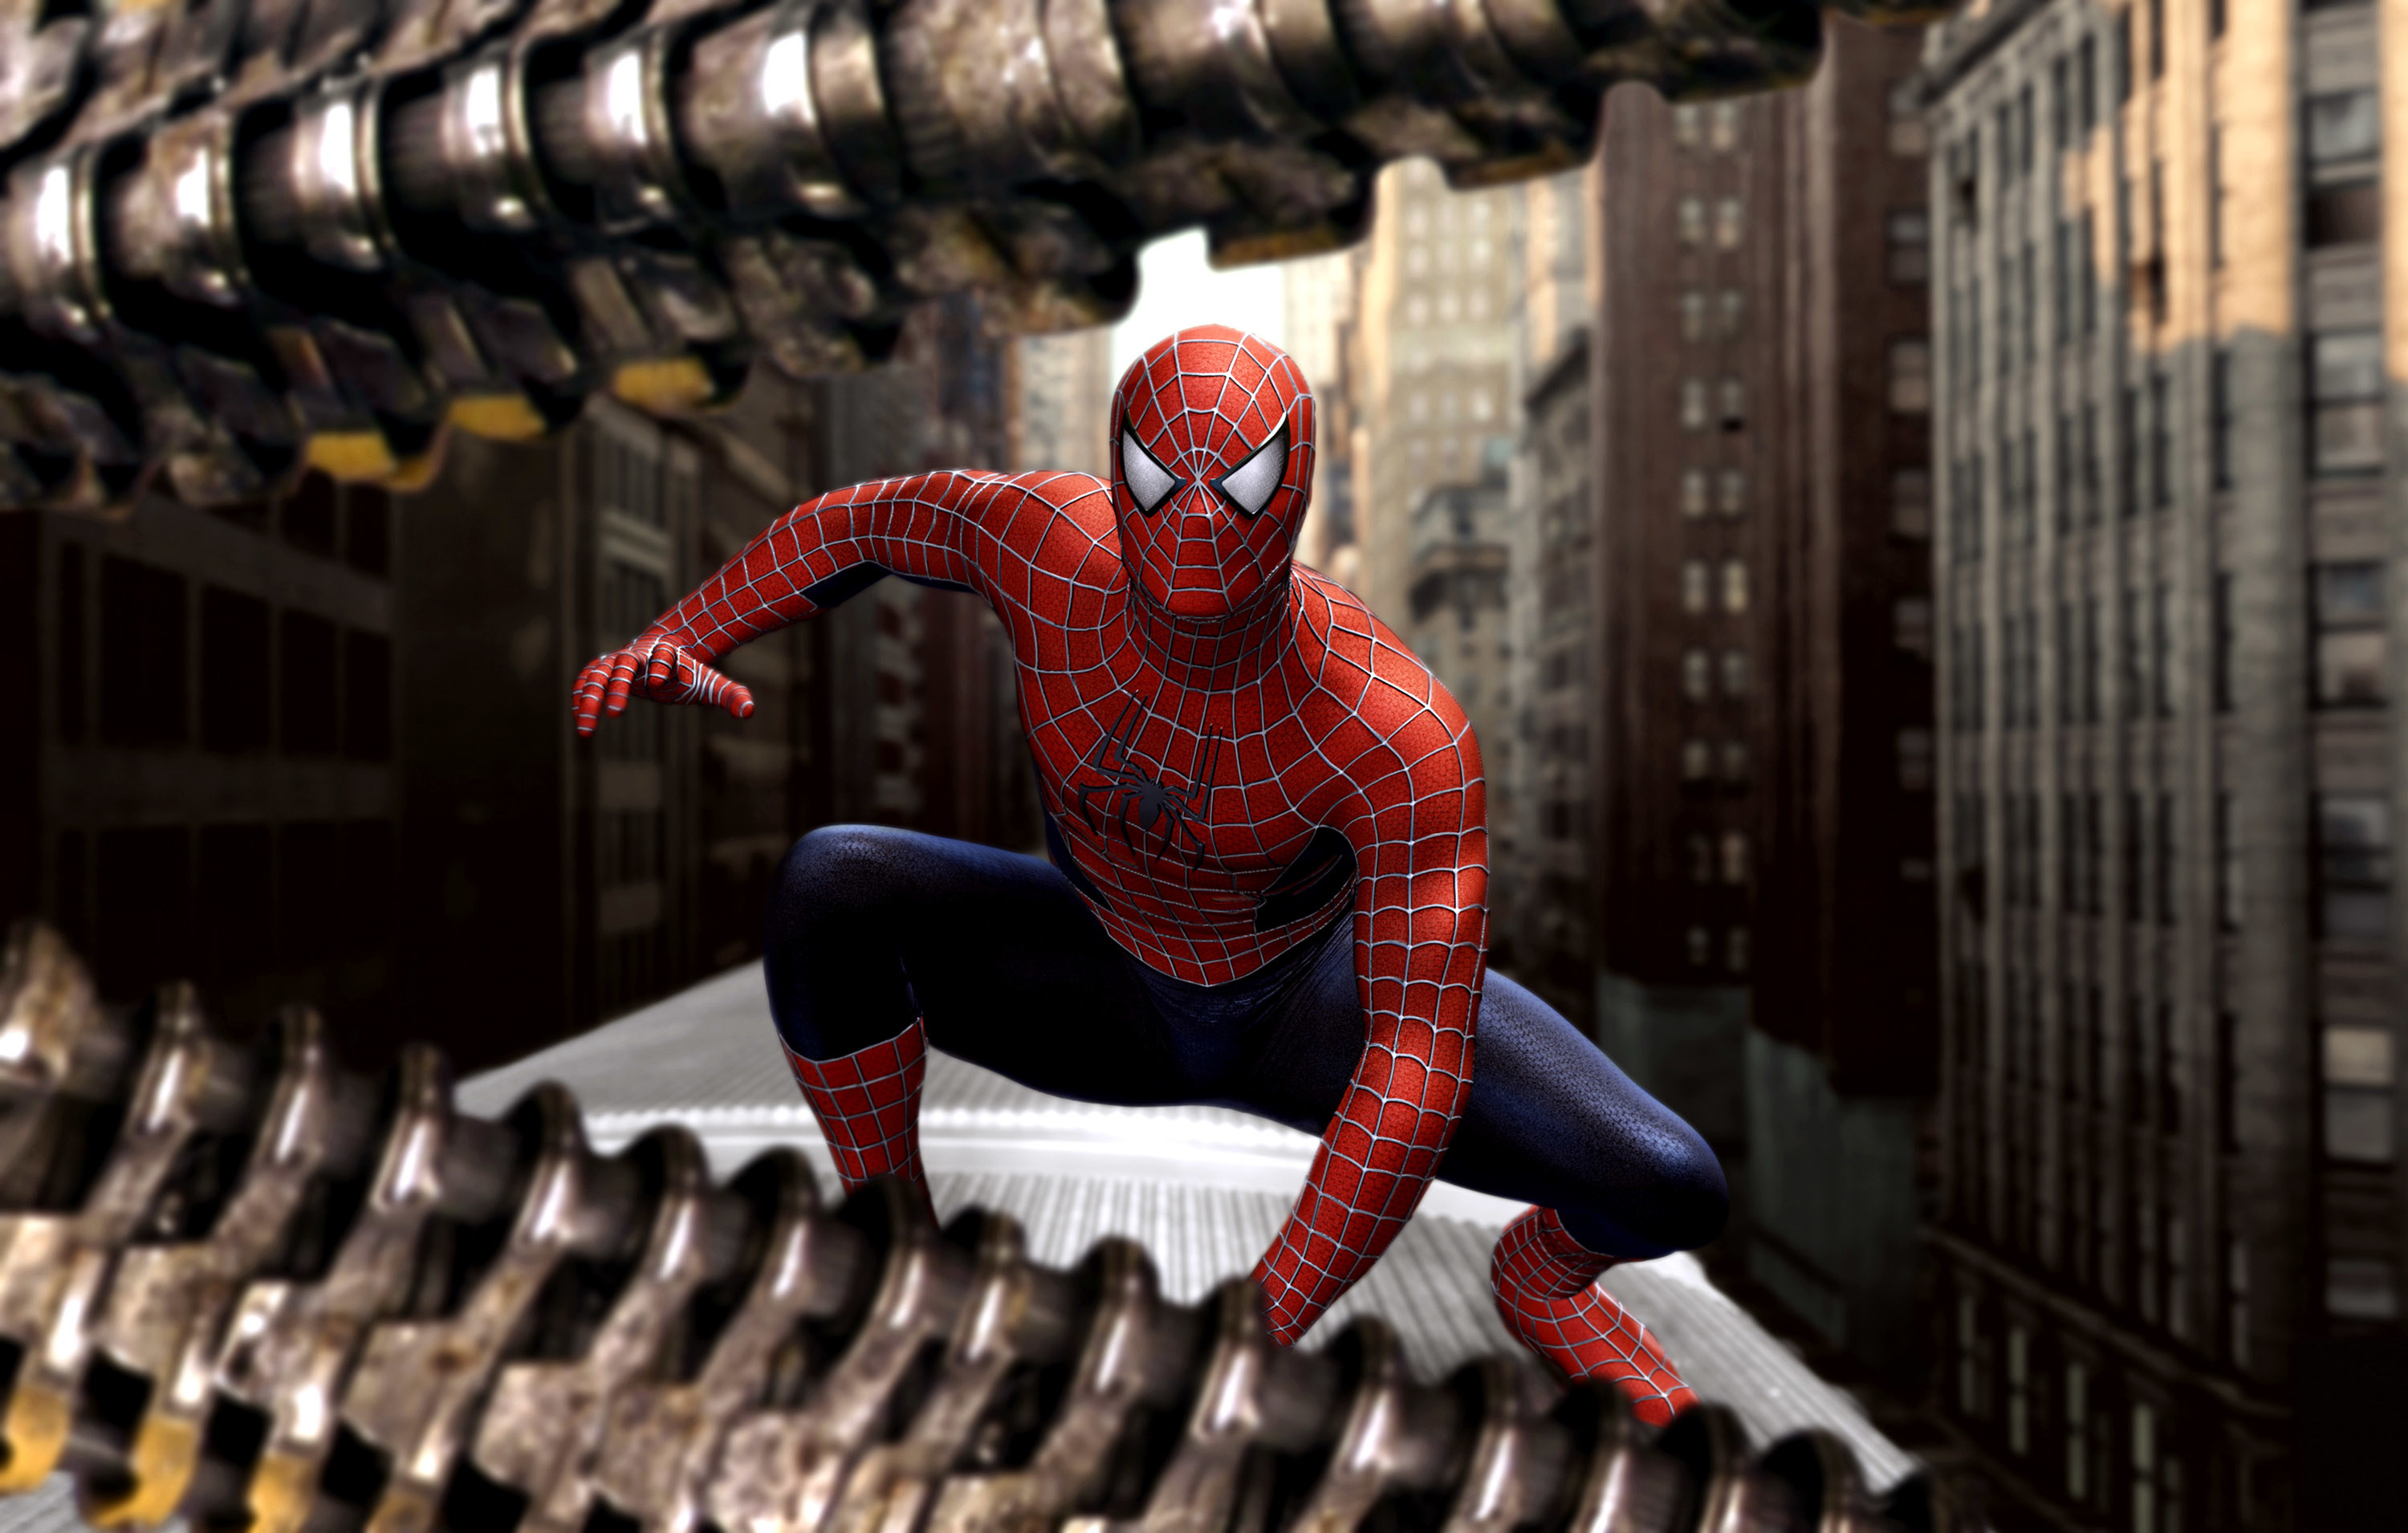 Spider-Man on top of a movie train